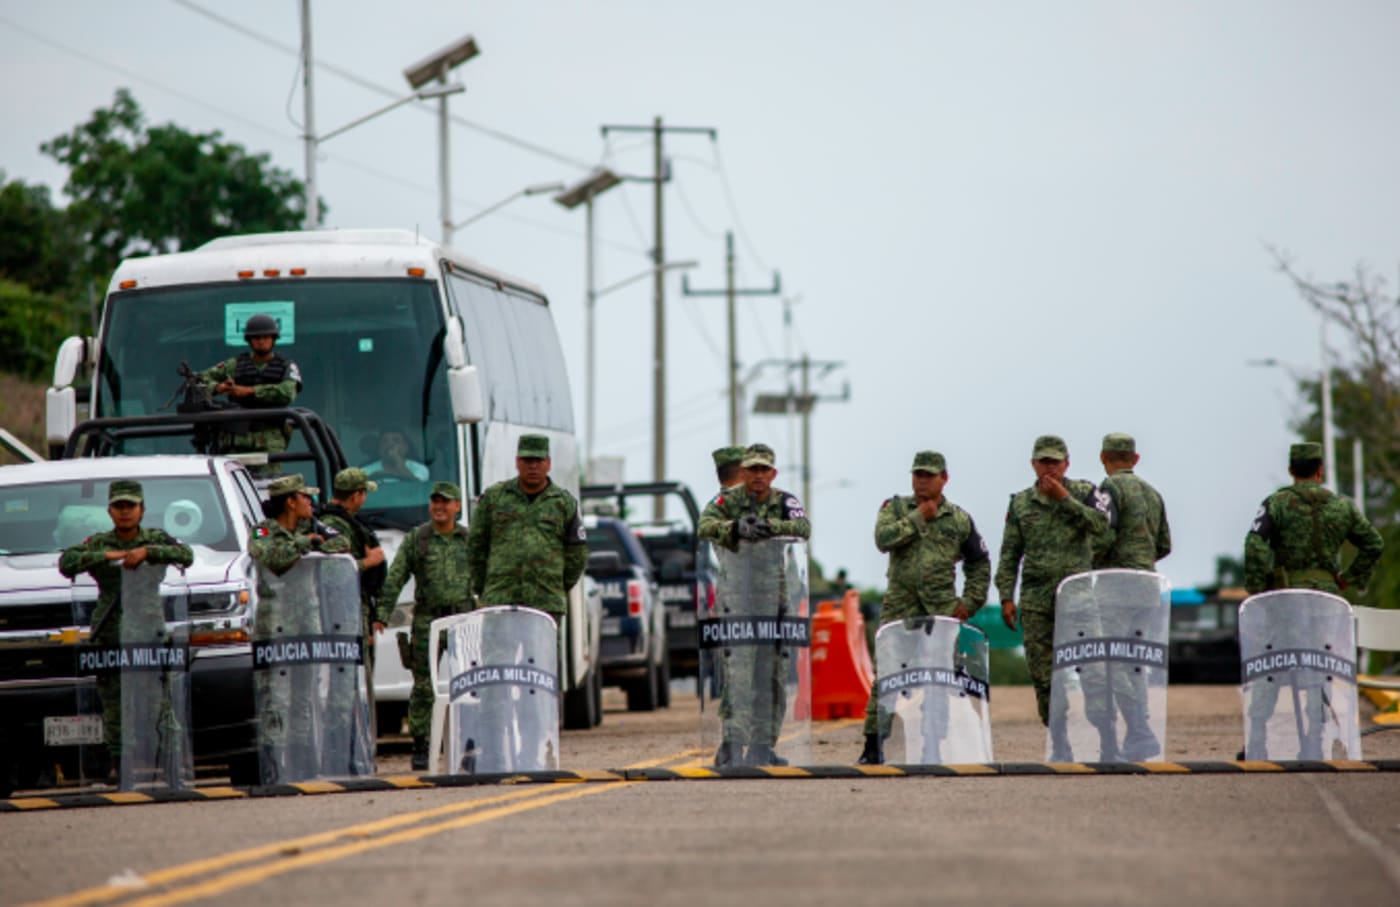 Mexican military police are standing at the border post